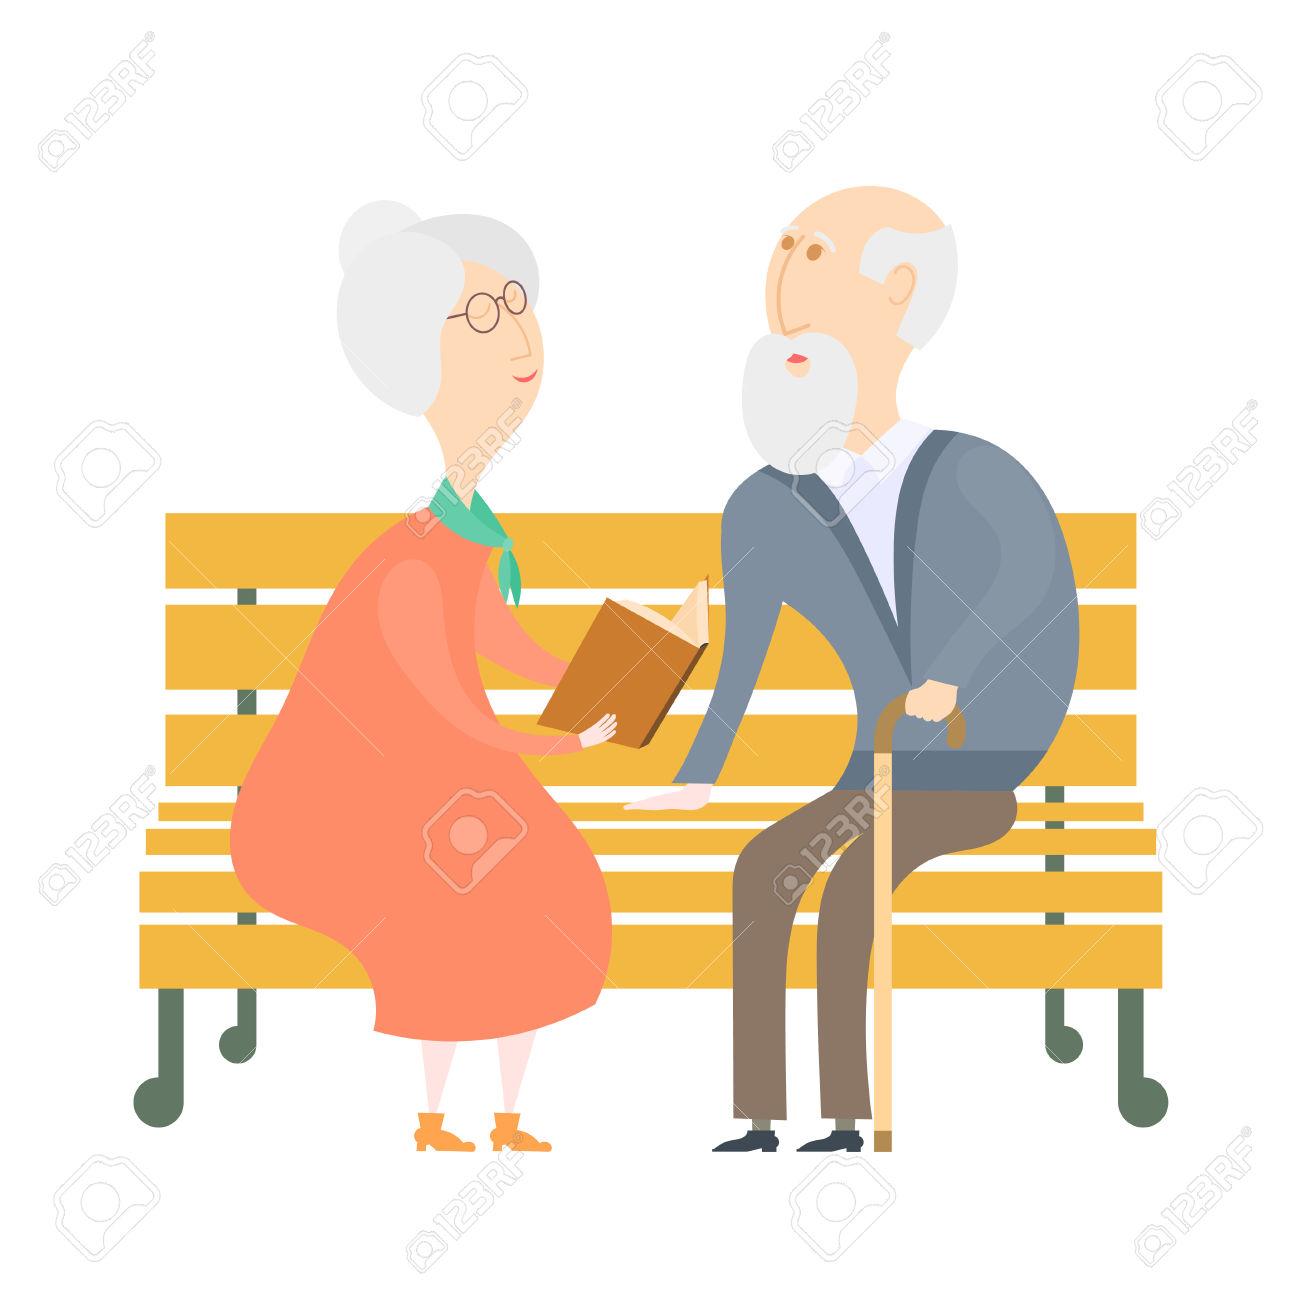 The Old Man And The Old Woman On A Bench. The Old Lady Old Man.